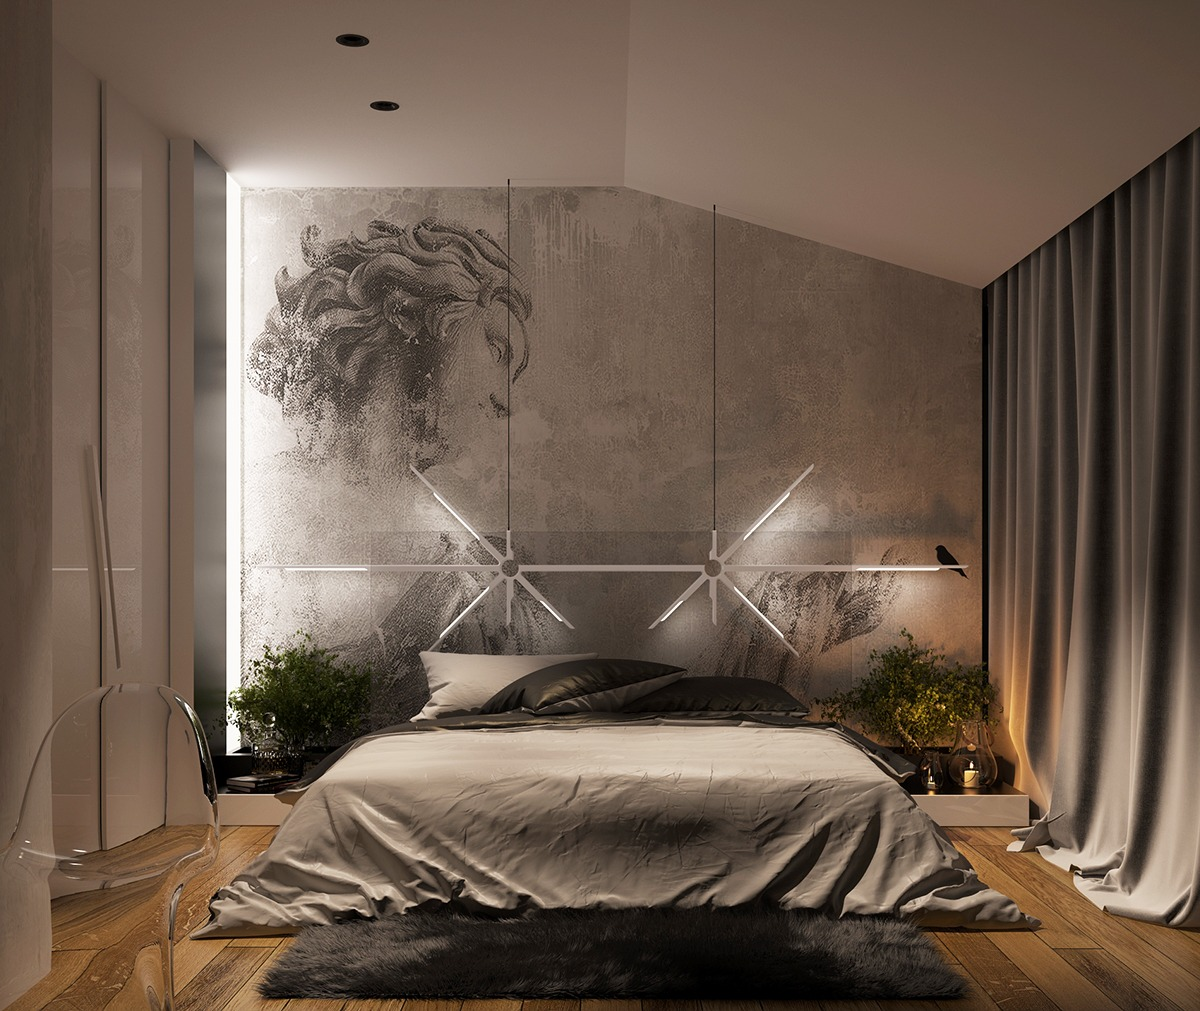 Bedroom Wall Design Ideas: Concrete Wall Designs: 30 Striking Bedrooms That Use